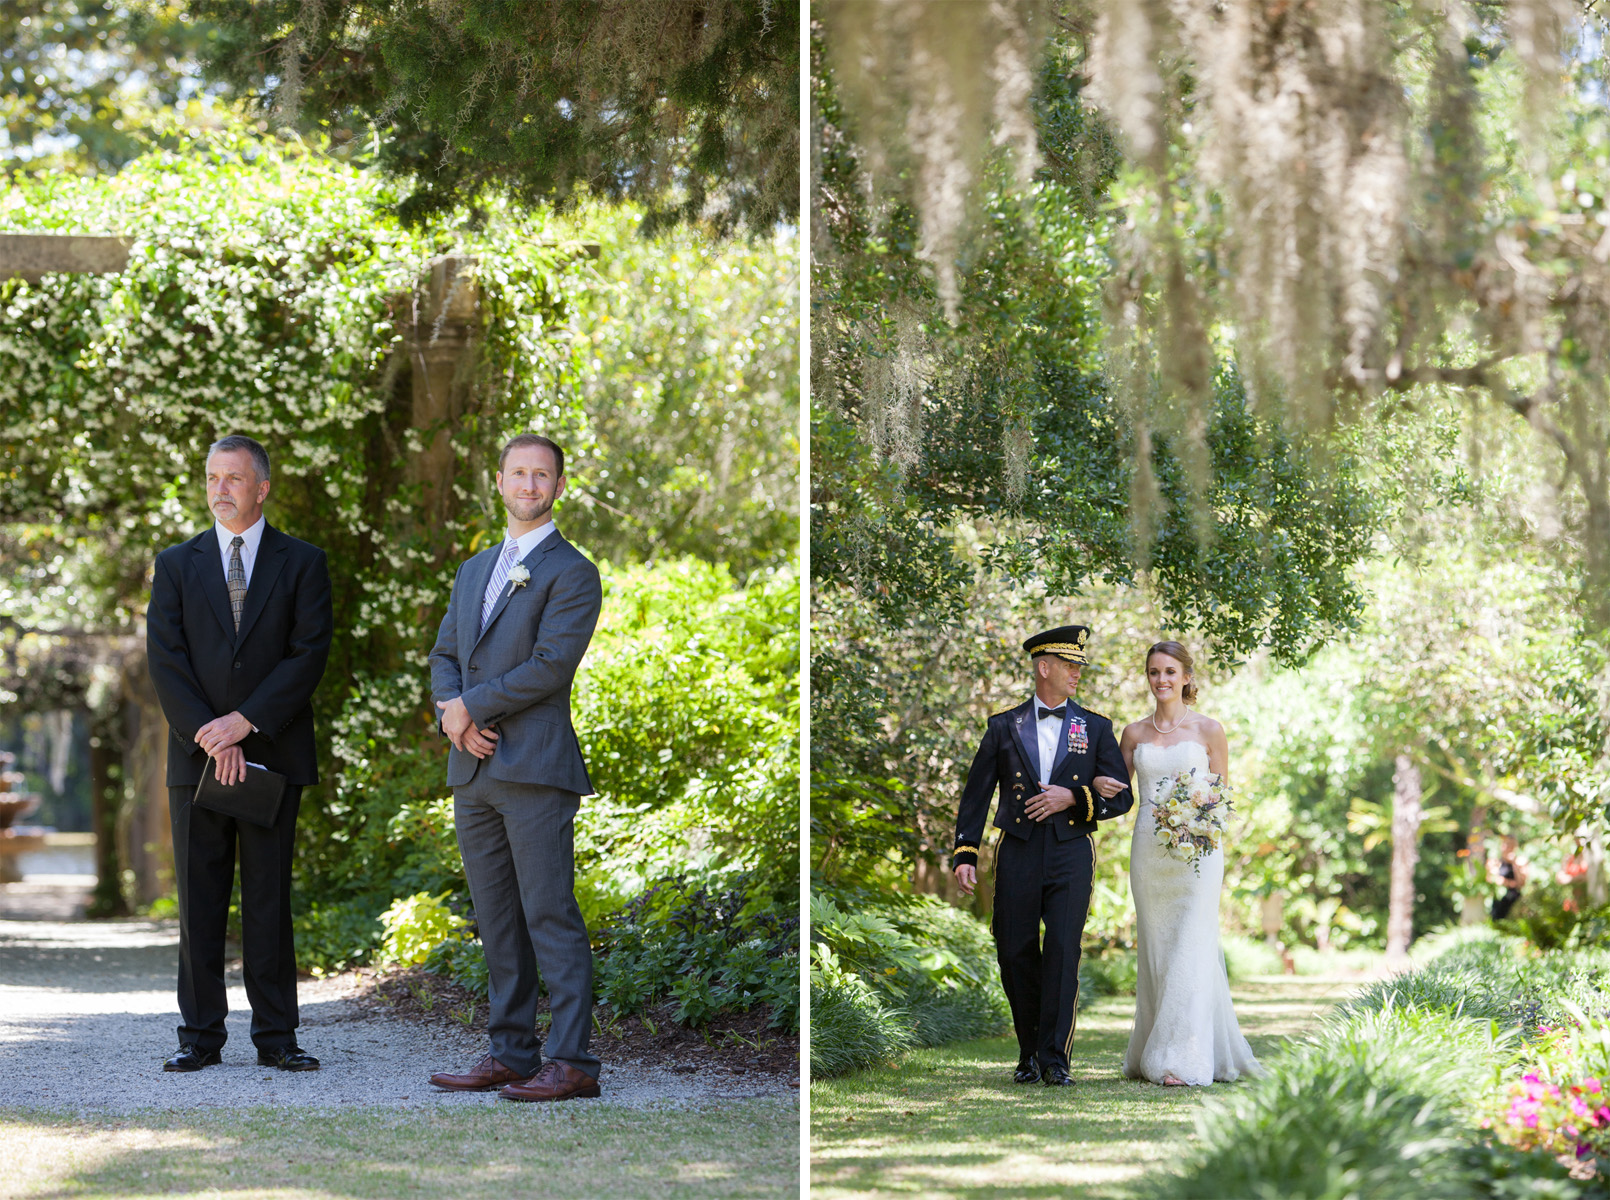 Airlie Gardens Wedding .jpg